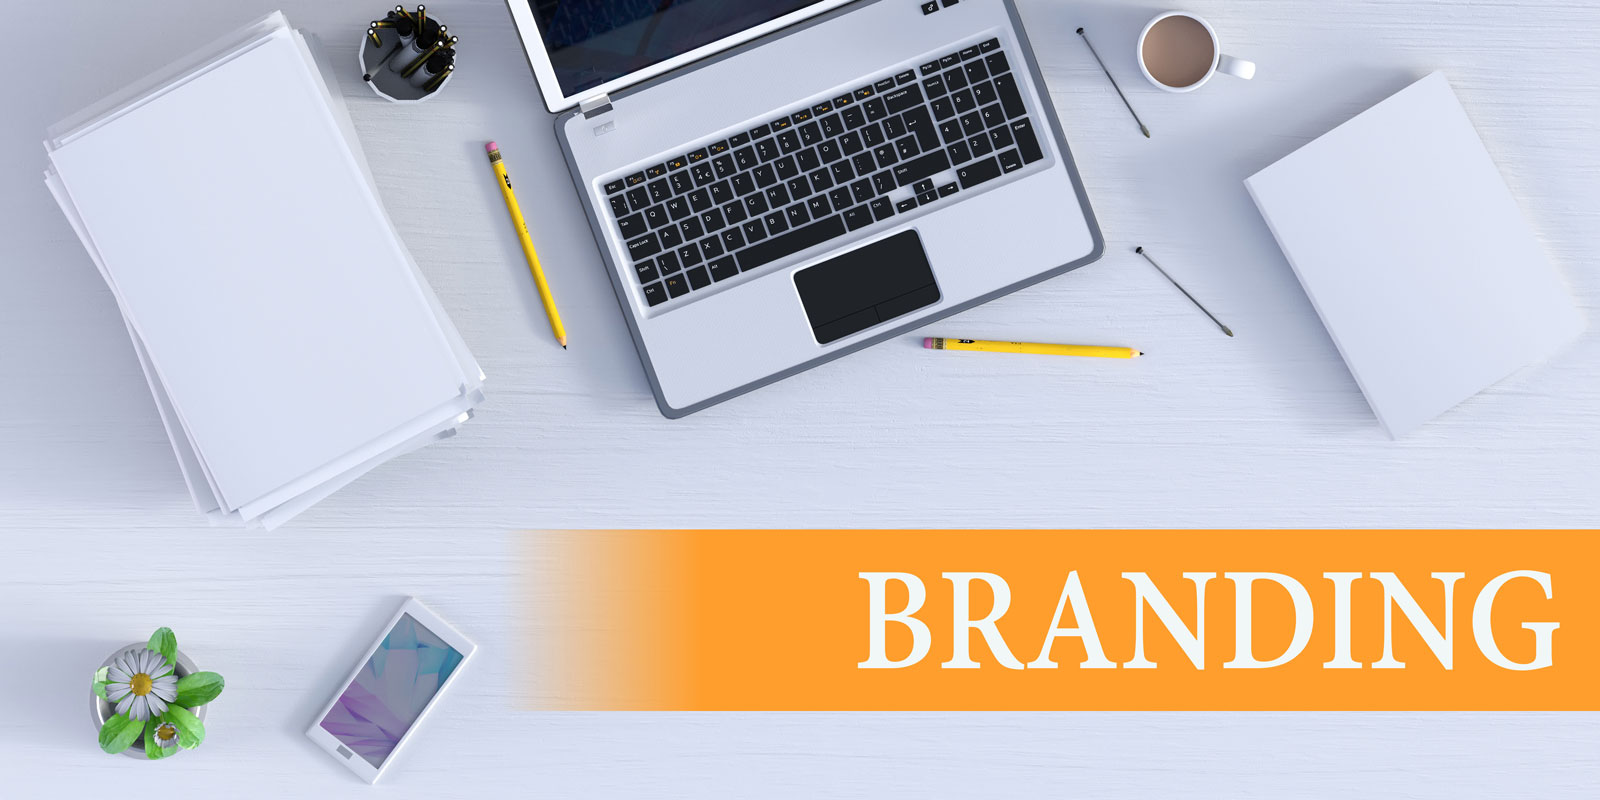 Office Stuff Branding | What Is Branding: A Guide To Becoming More Than A Business